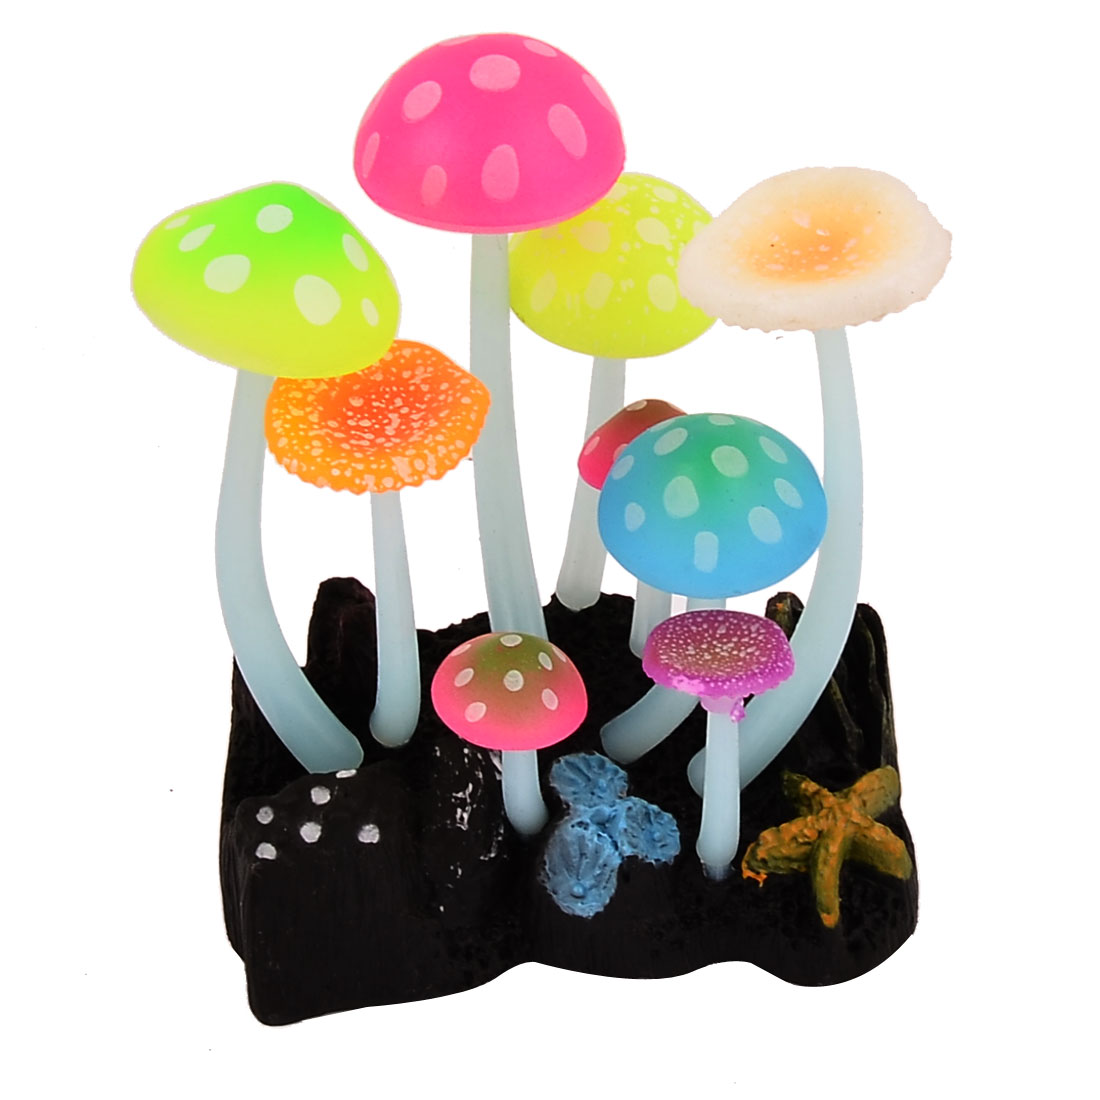 Aquarium Fish Tank Artificial Sucker Mushrooms Underwater Landscape Plant Ornament Multicolor